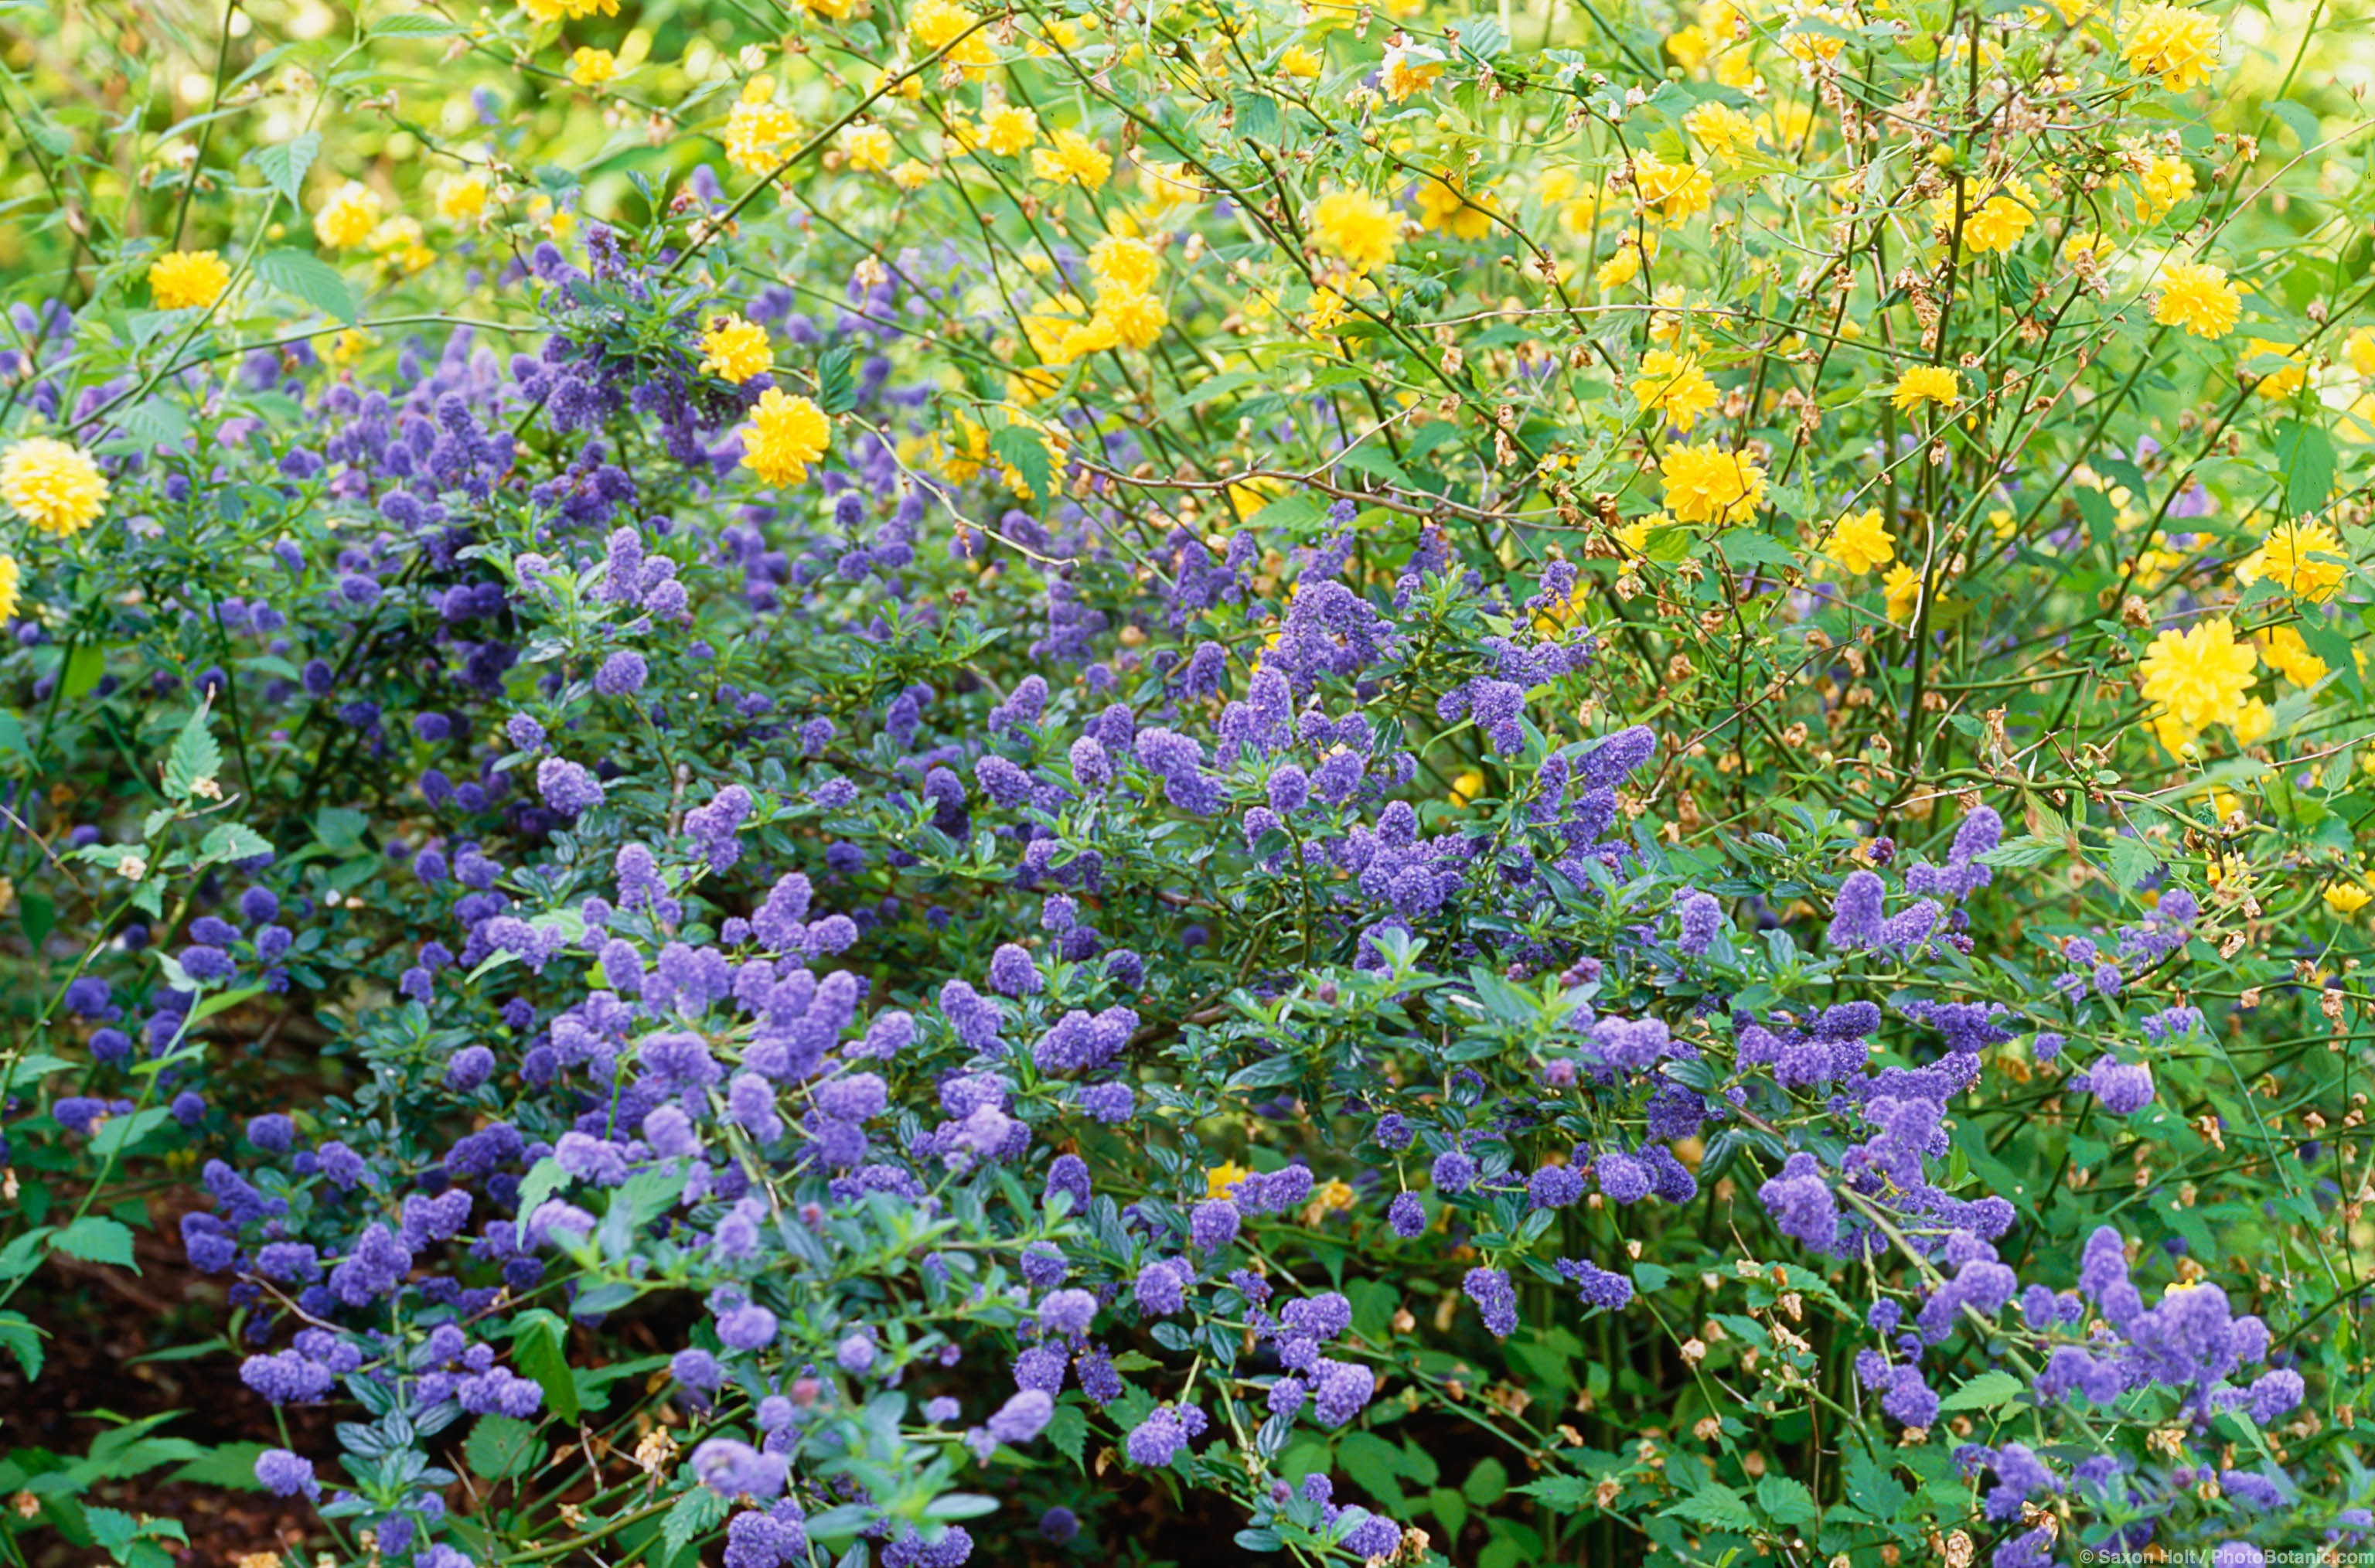 Ceanothus summer dry celebrate plants in summer dry gardens ceanothus griseus horizontalis yankee point blue flowering california lilac shrub as groundcover izmirmasajfo